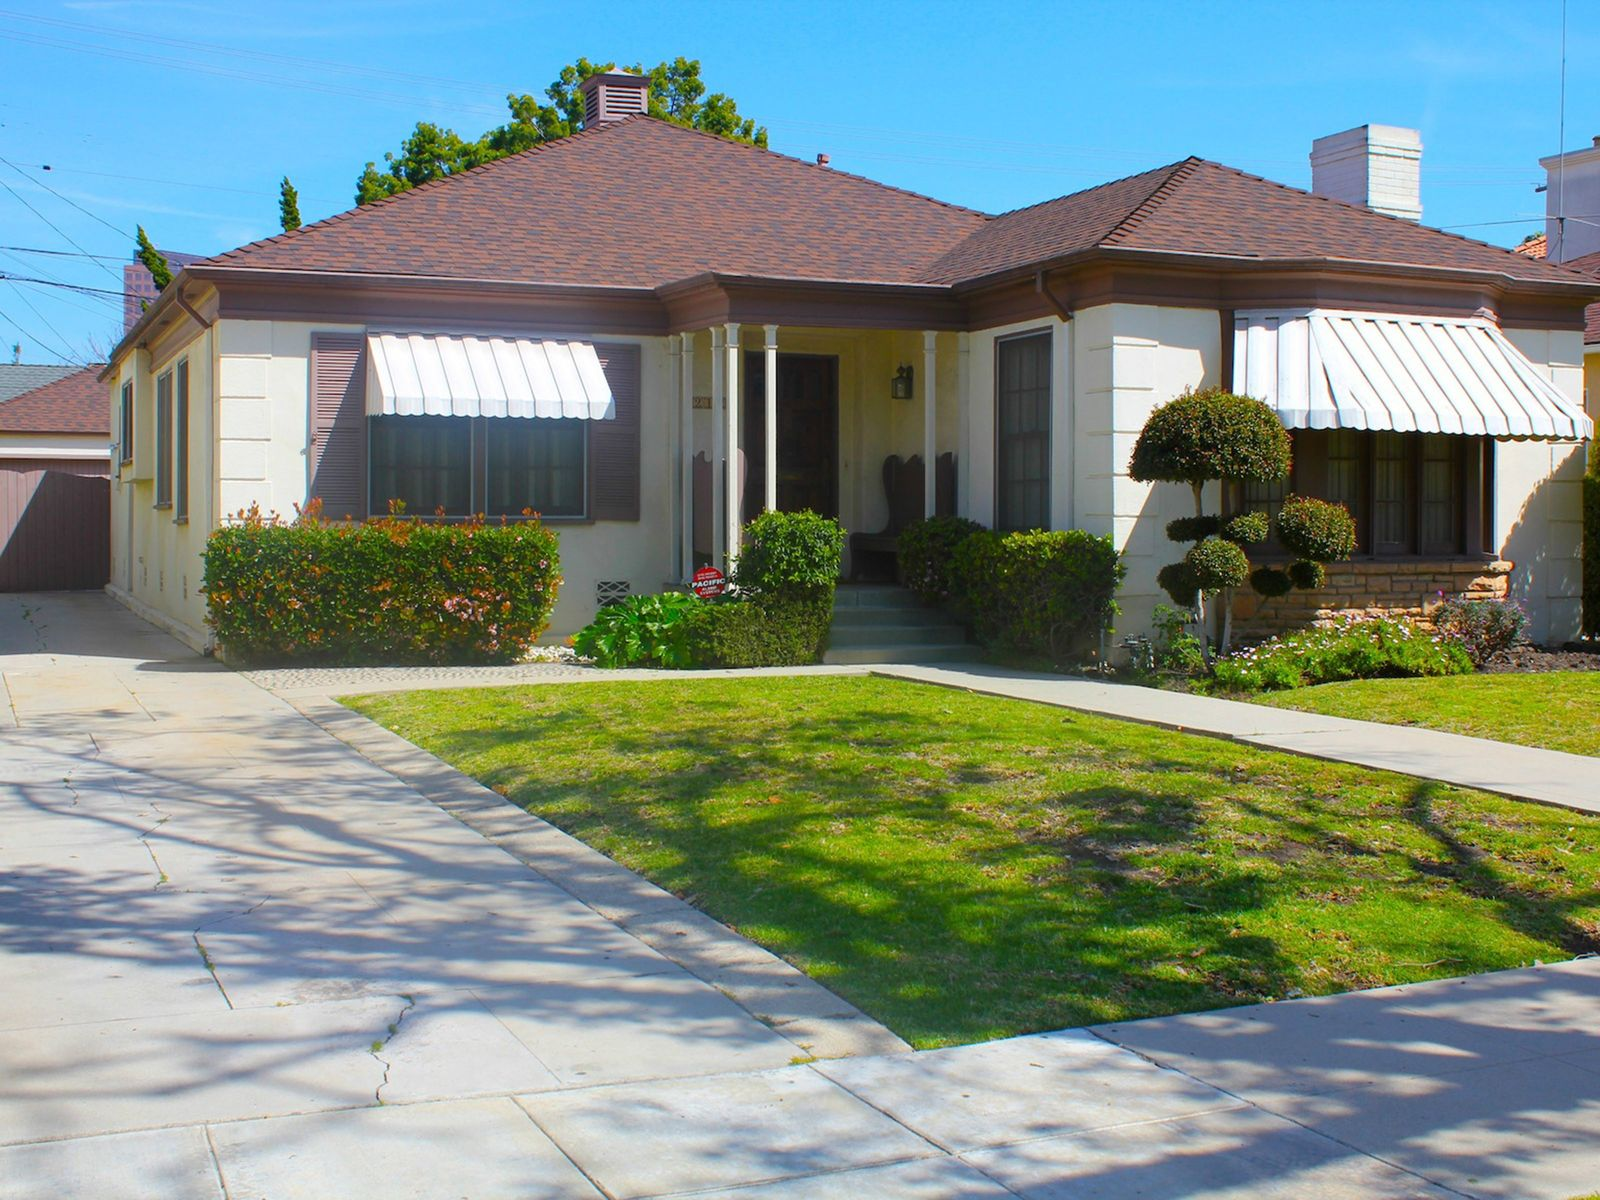 Remodel, Reimagine, Rebuild, Beverly Hills CA Single Family Home - Los Angeles Real Estate